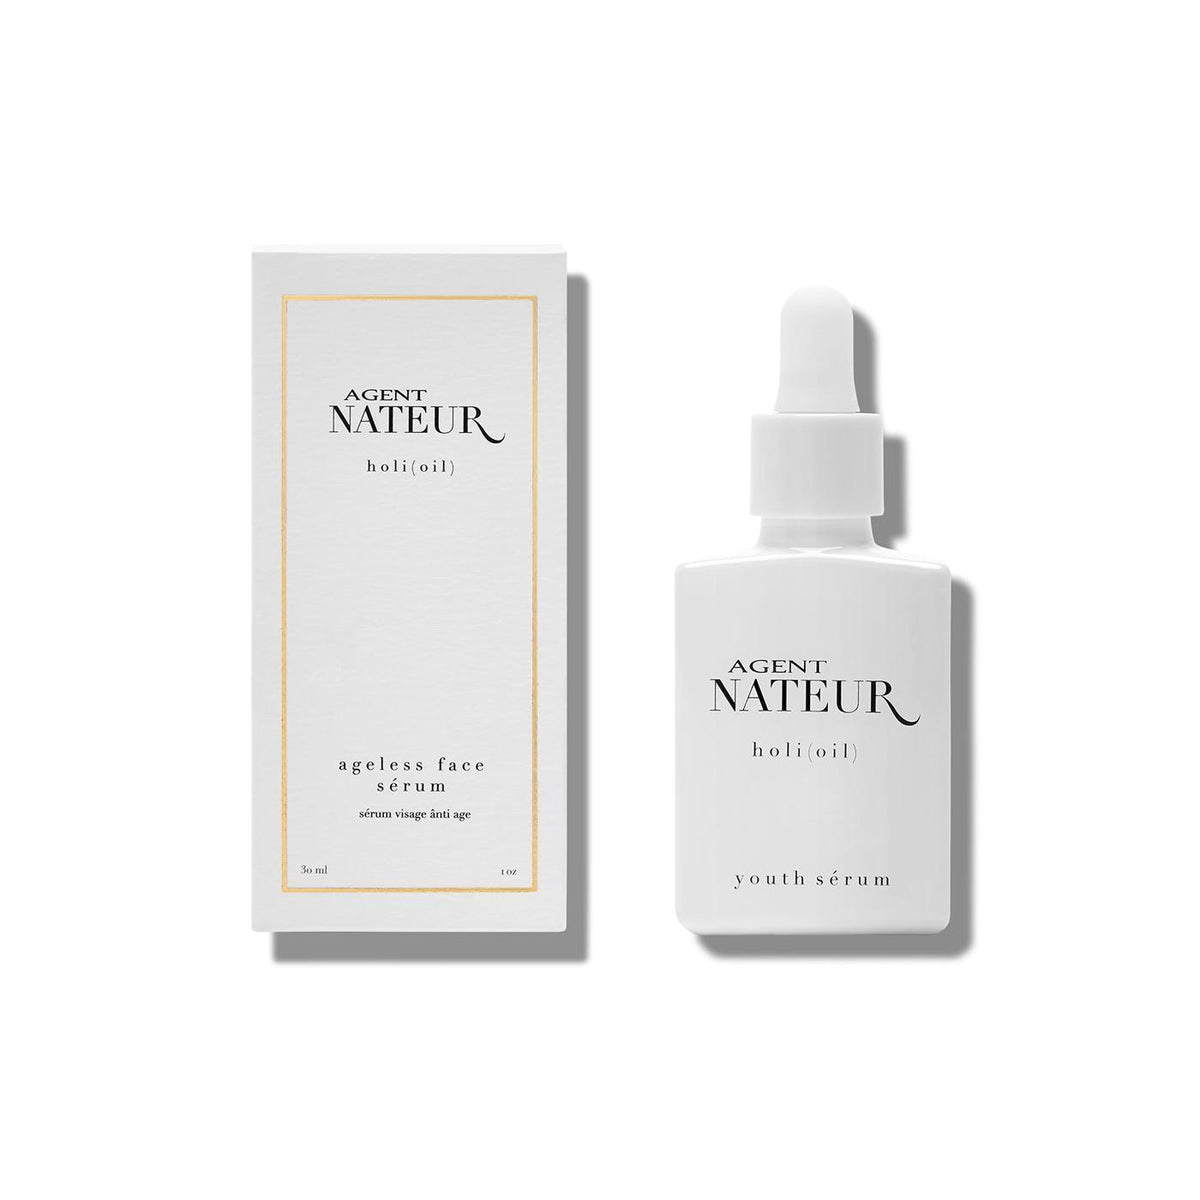 Holi (Oil) Refining Ageless Face Serum Unisex (Vegan) Serum Agent Nateur - Genuine Selection